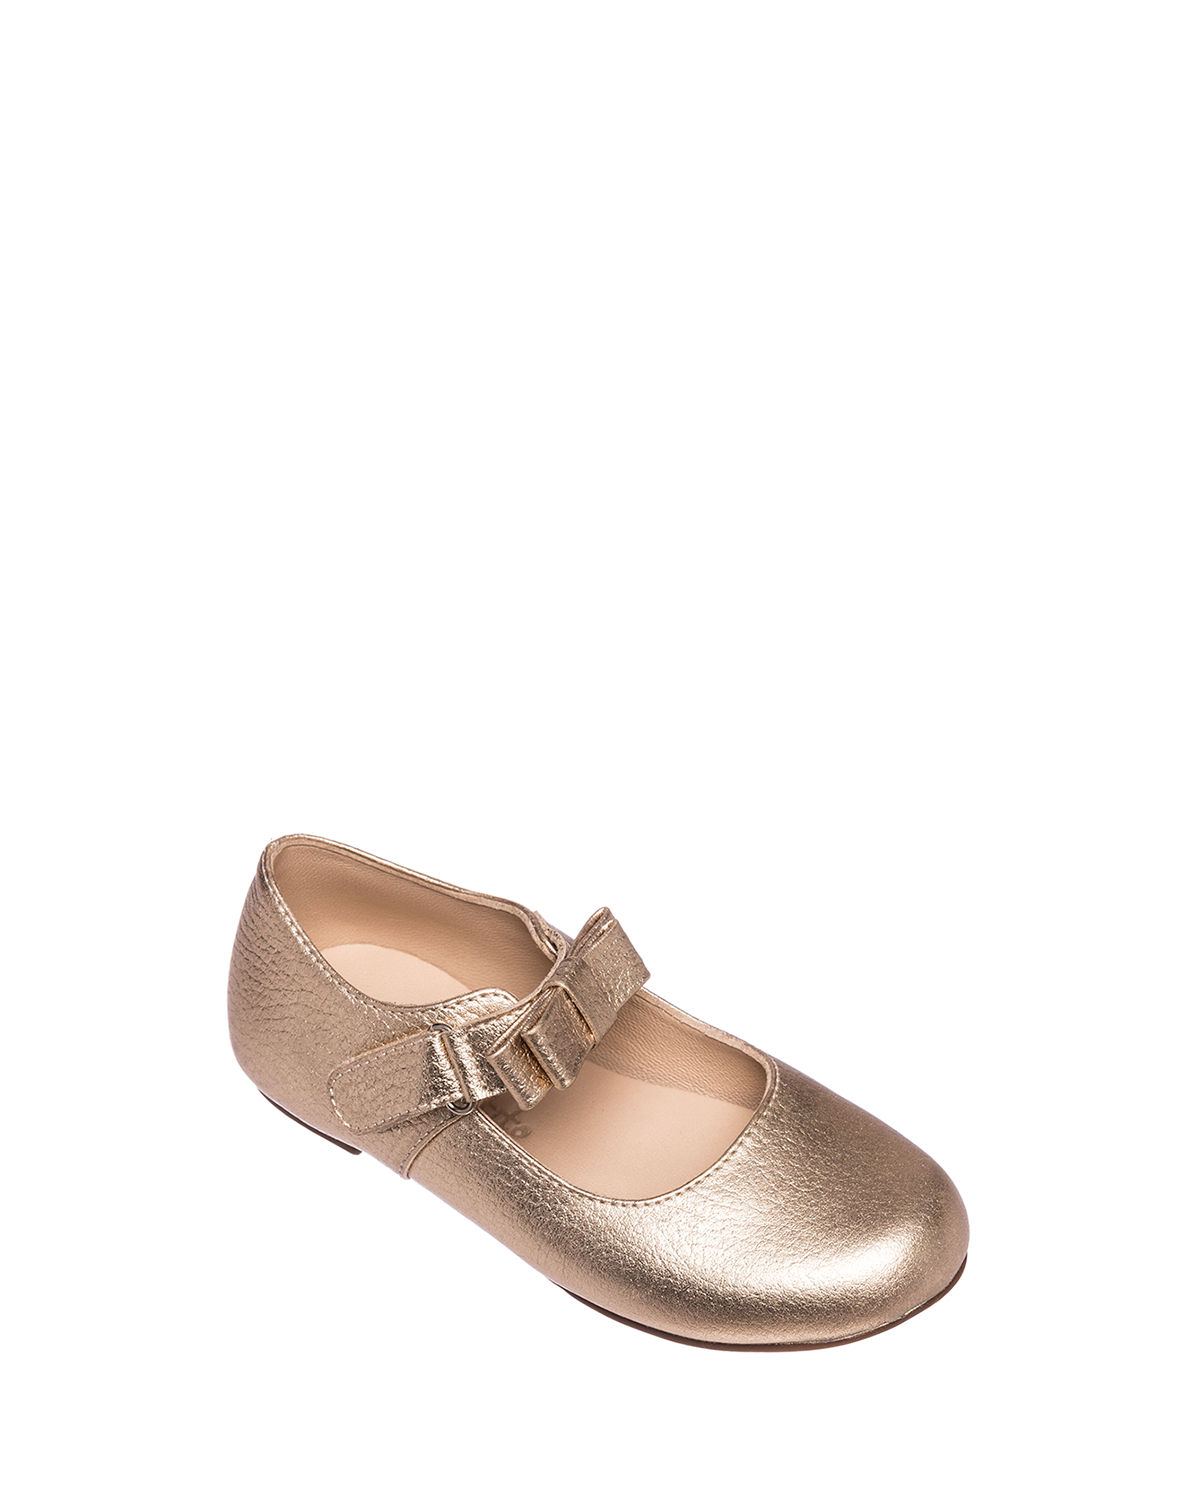 Charlotte Patent Leather Mary Jane